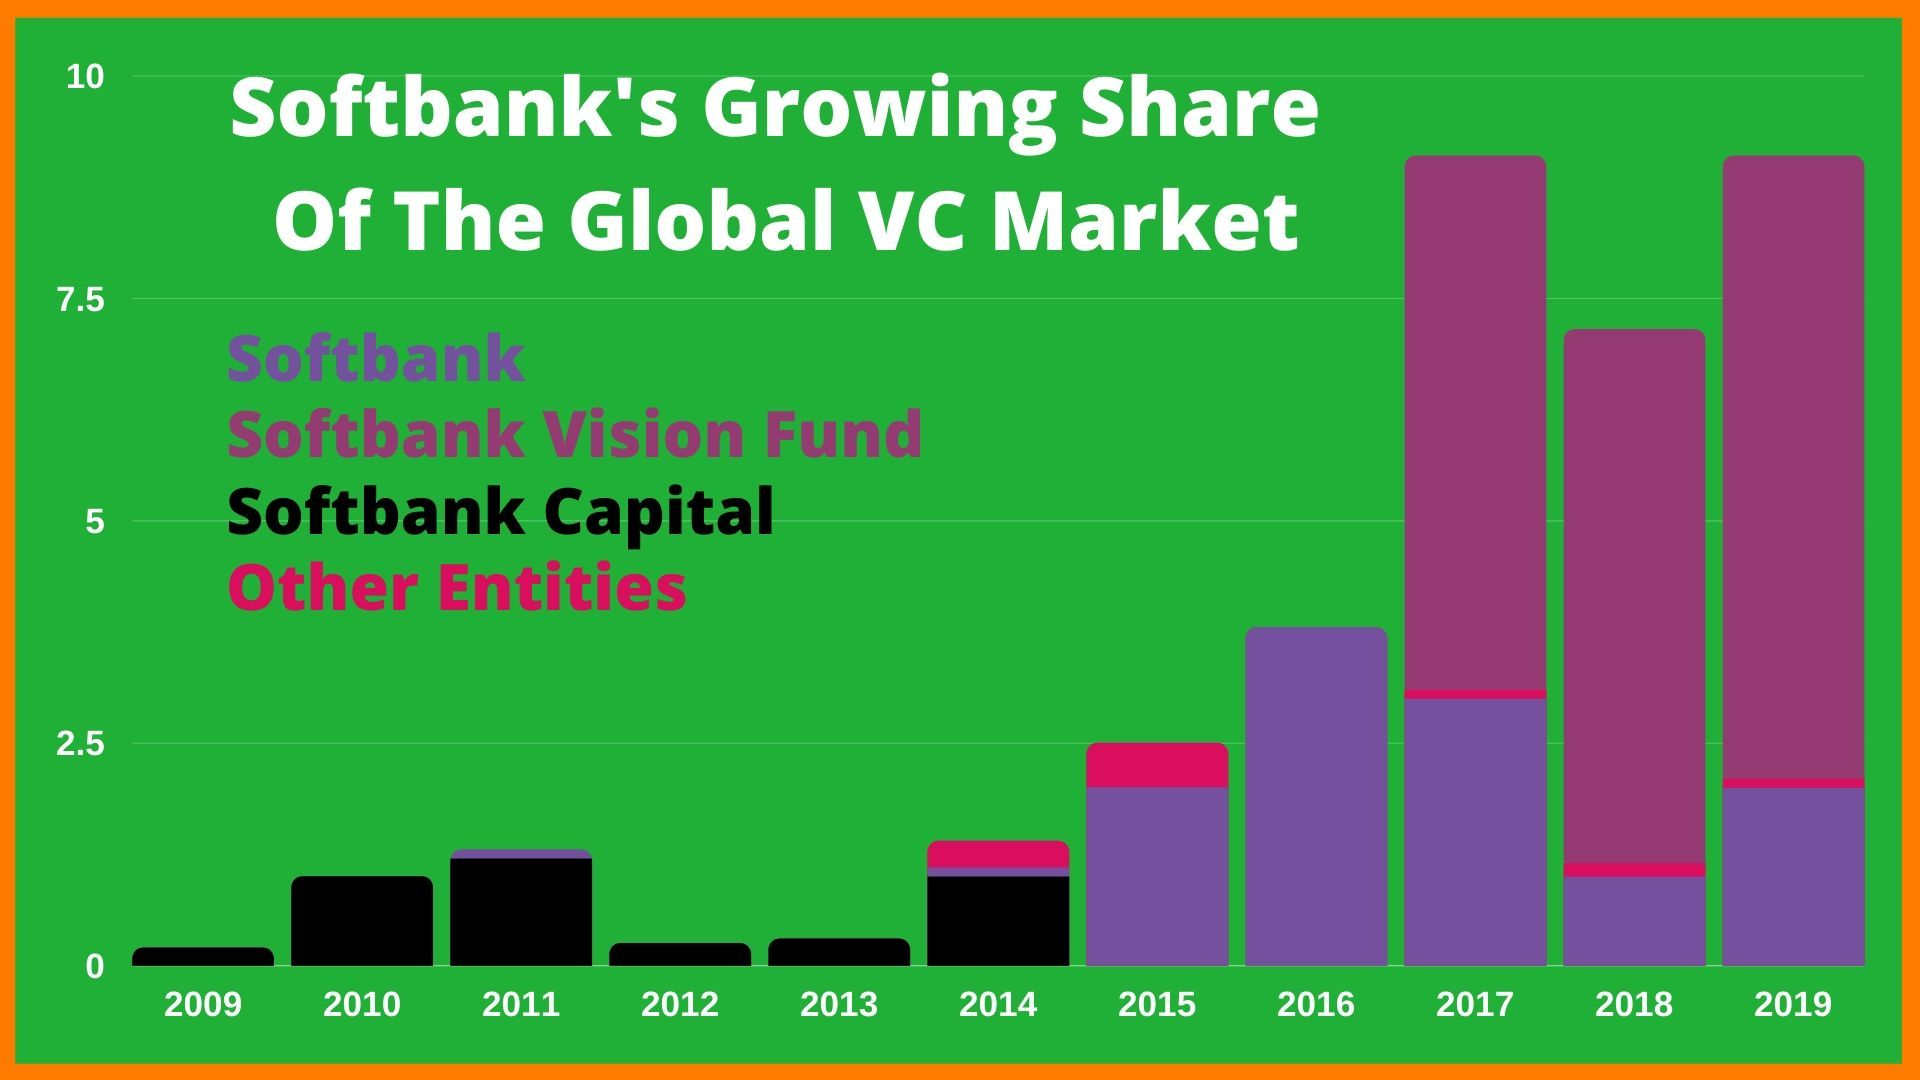 Softbank Growth Over The Years